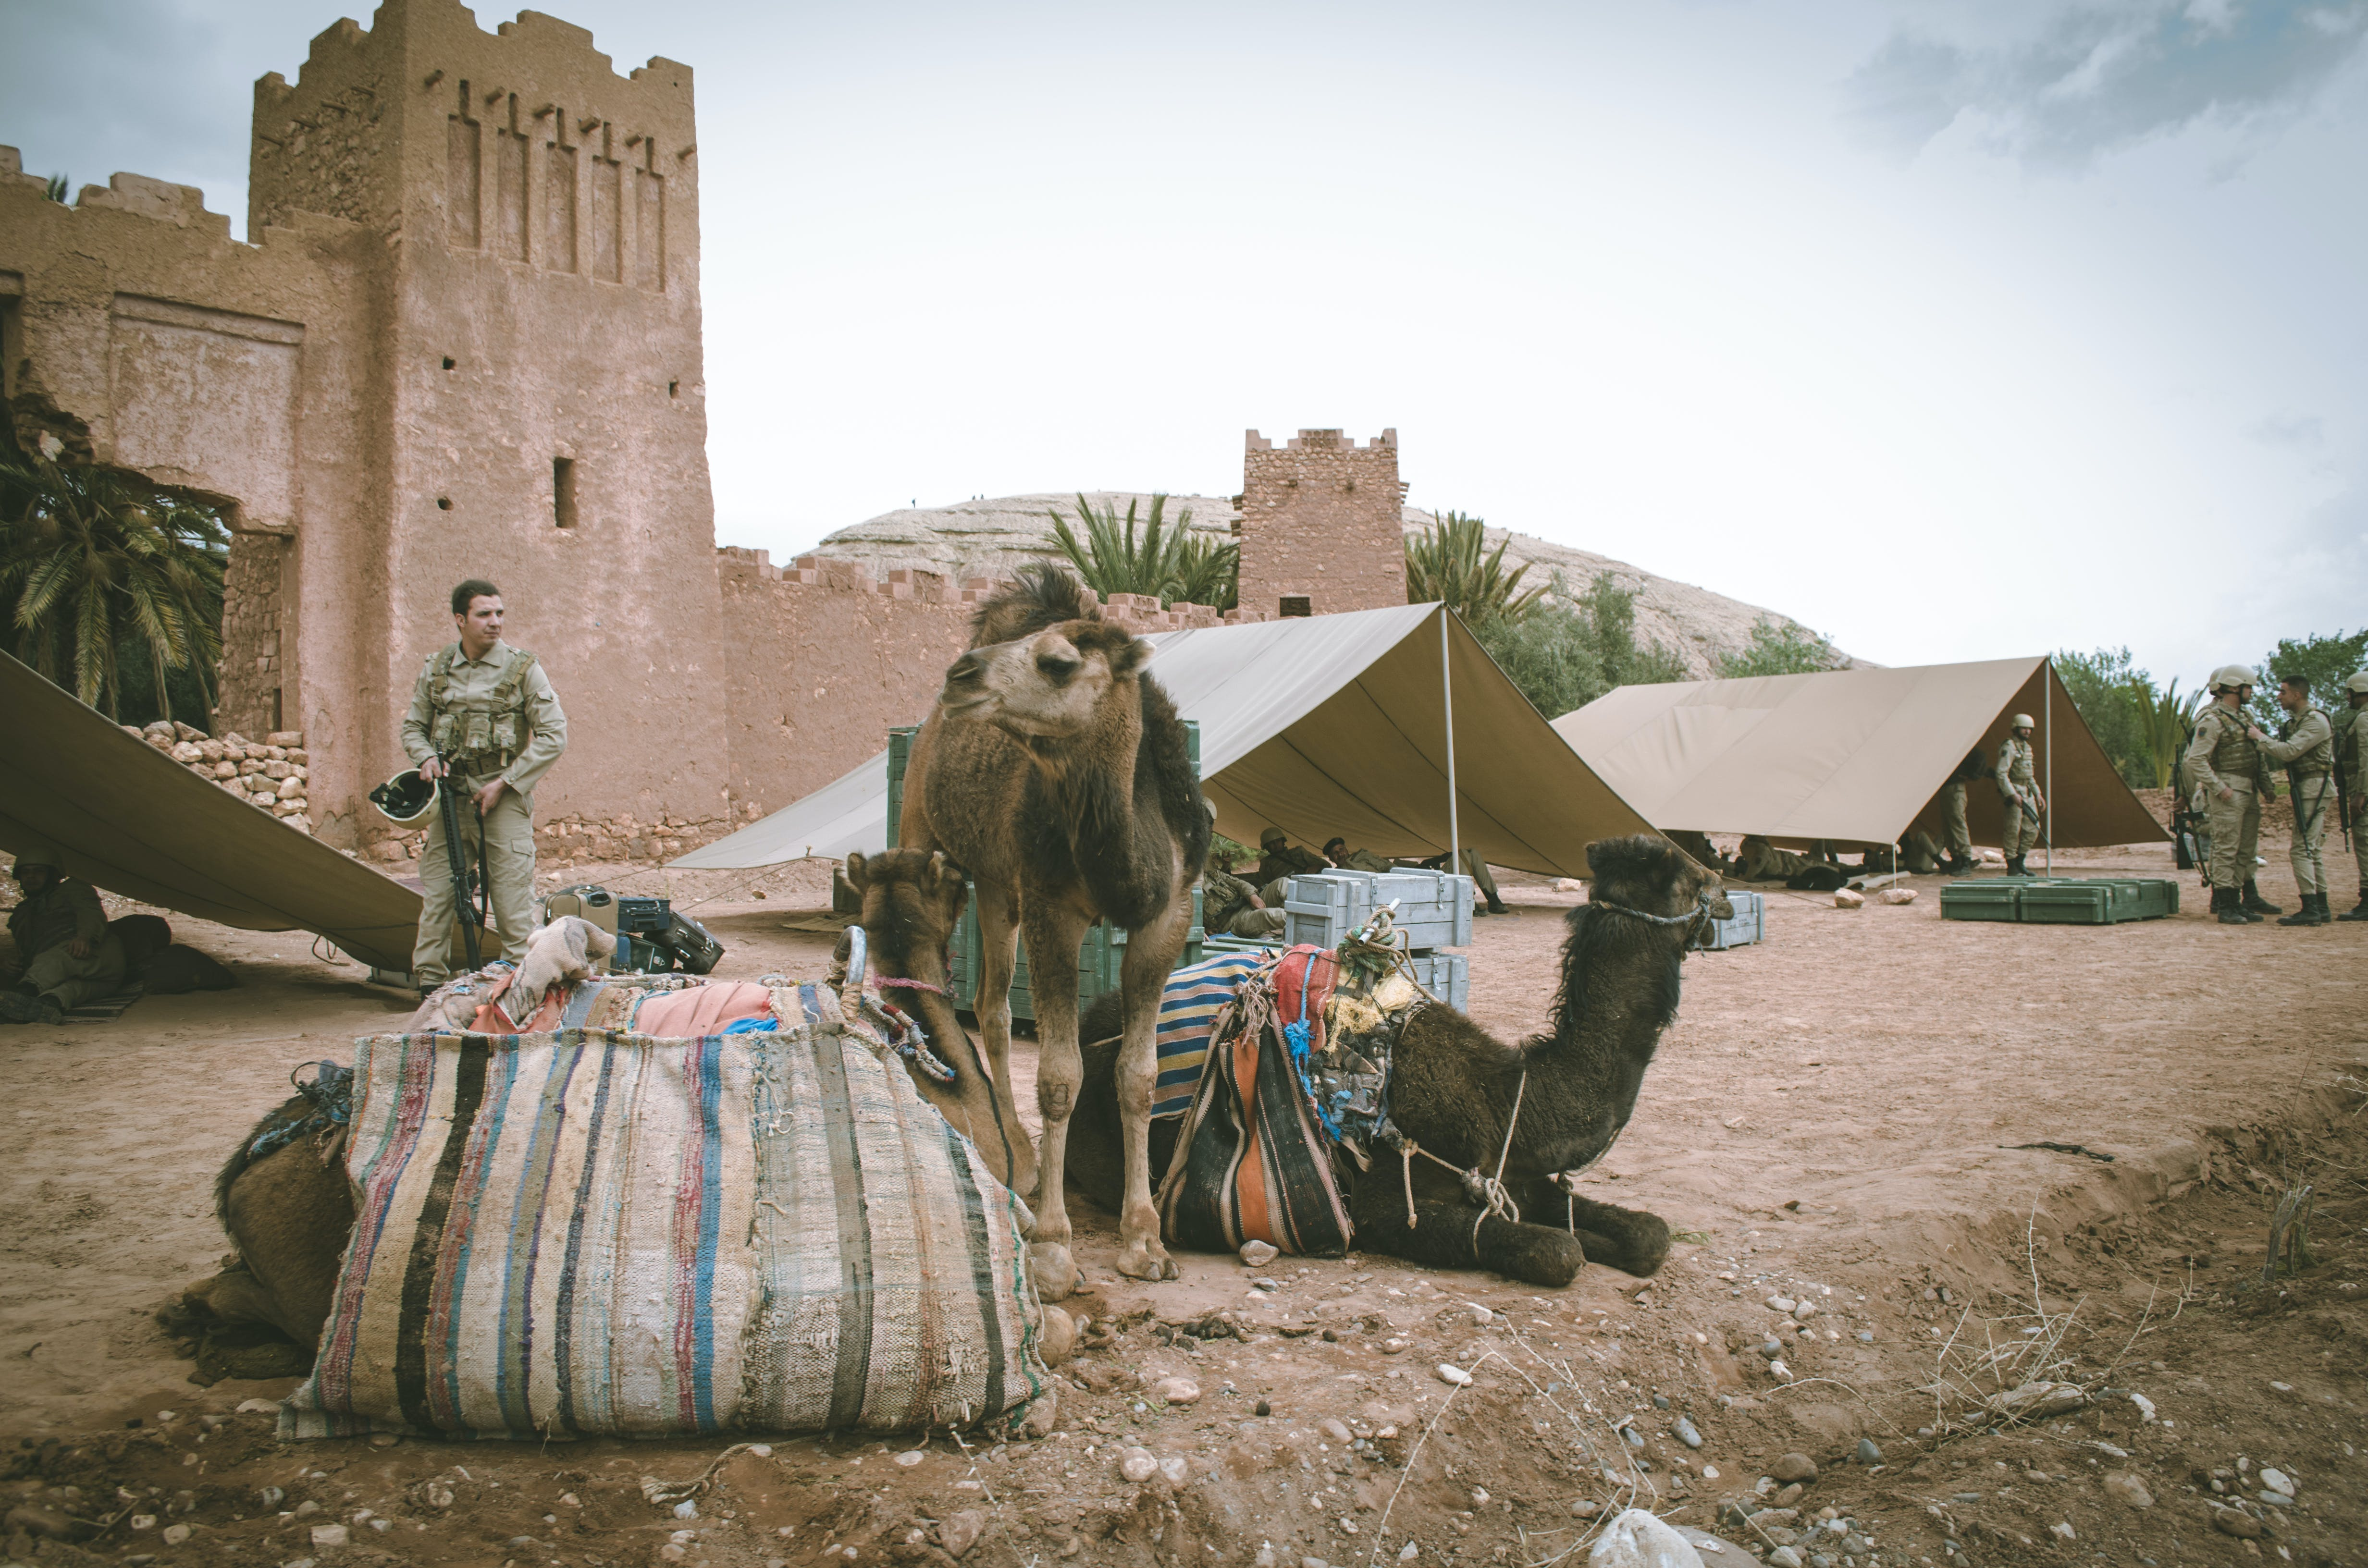 Two Camels Near Man and Brown Concrete Building